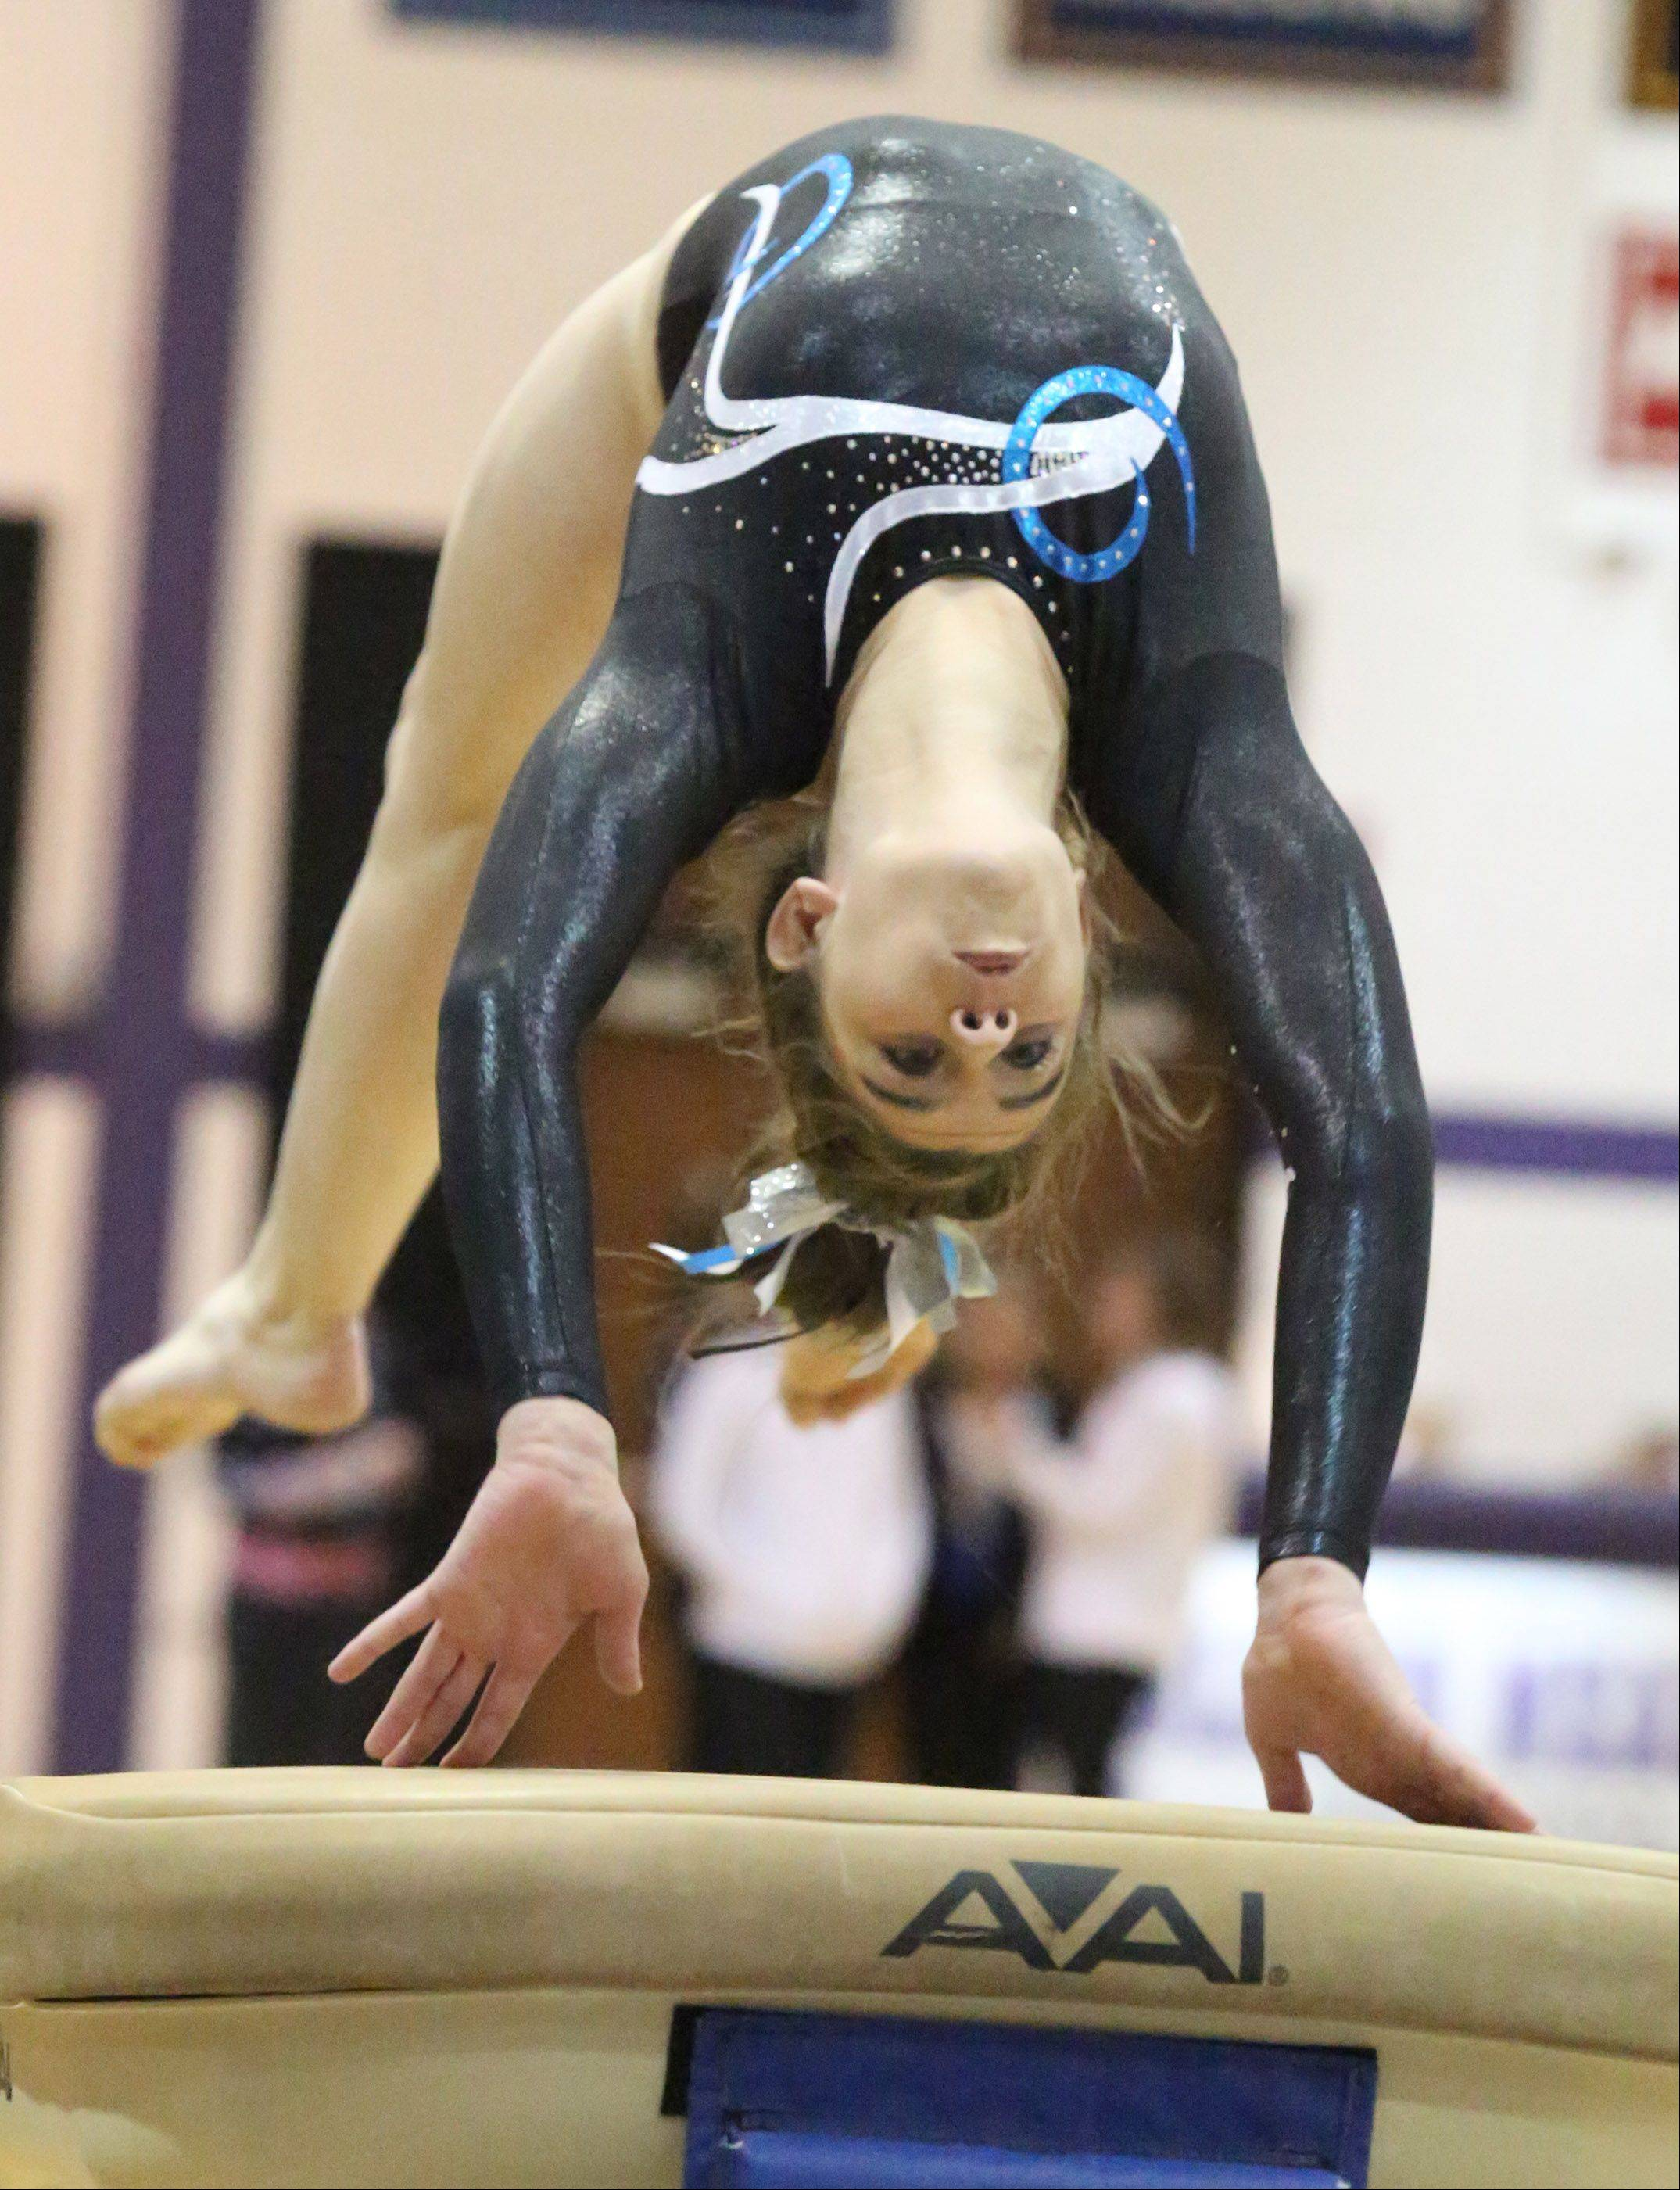 Prospect's Megan Schmit competes on the vault at the Rolling Meadows Al Galatte Invitational on Saturday.